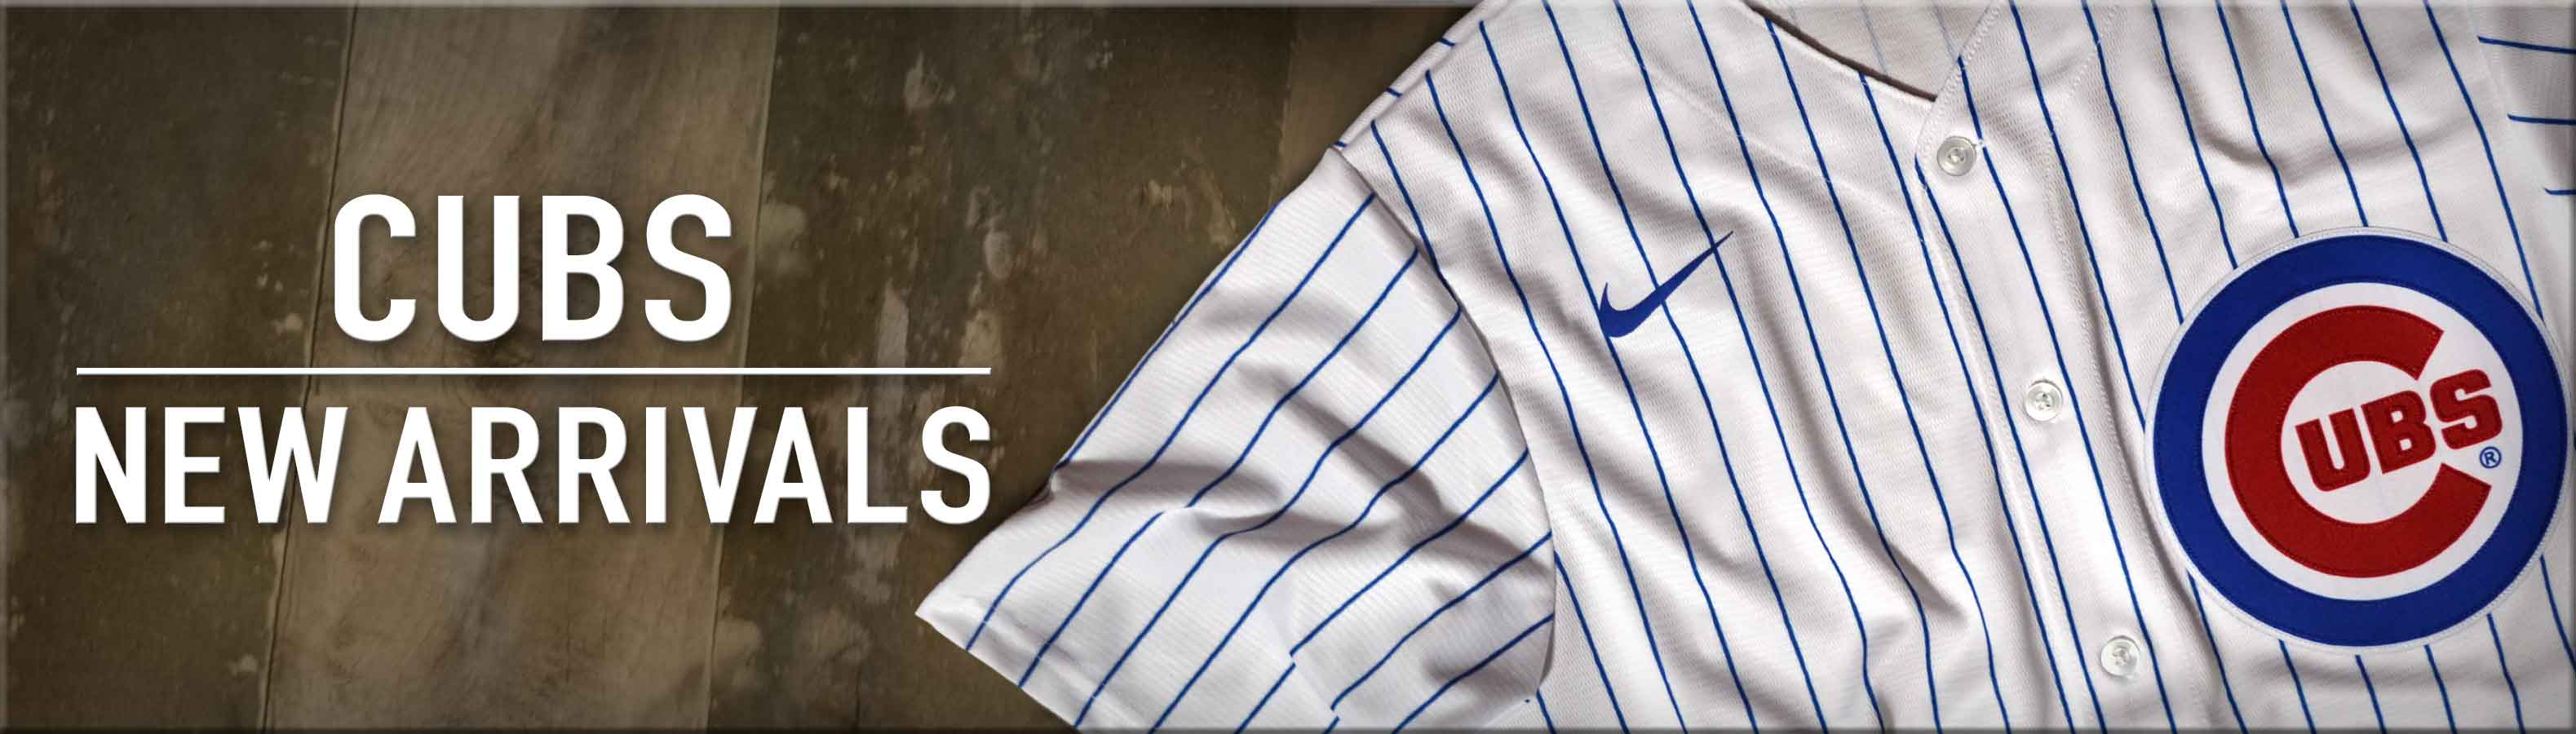 Cubs x Nike. The new Nike collection is now available!